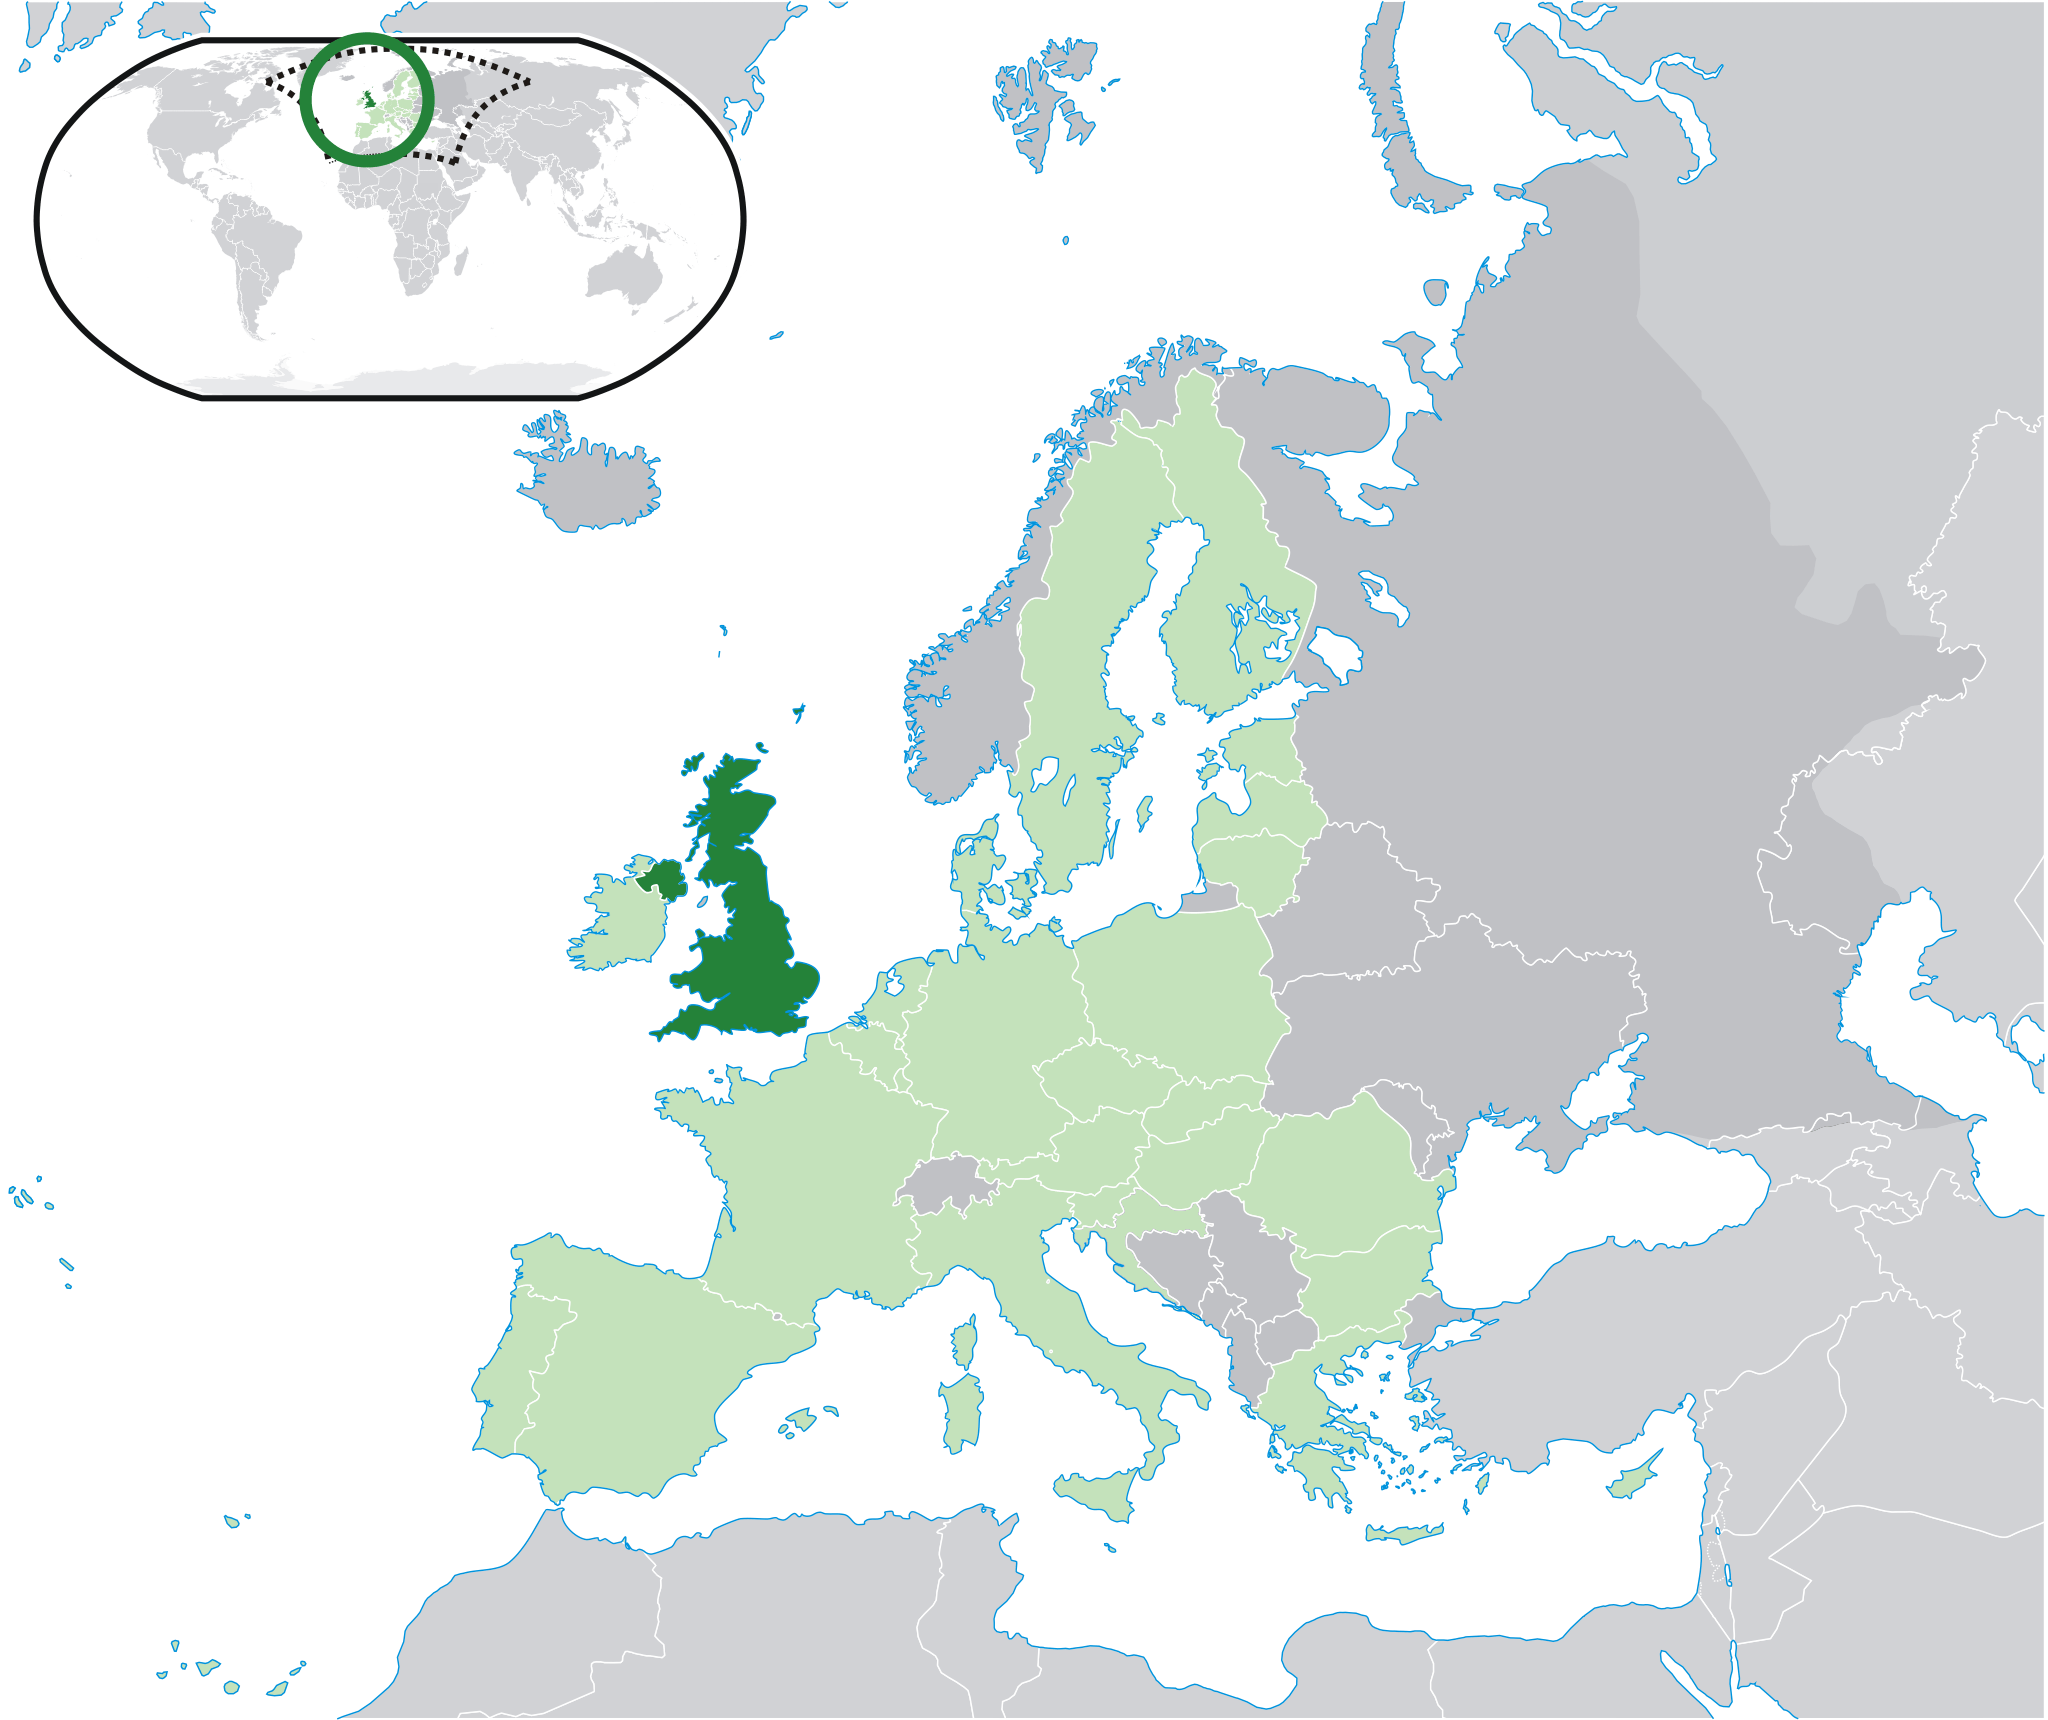 Map Of Uk In Europe.File Location Uk Eu Europe Png Wikimedia Commons